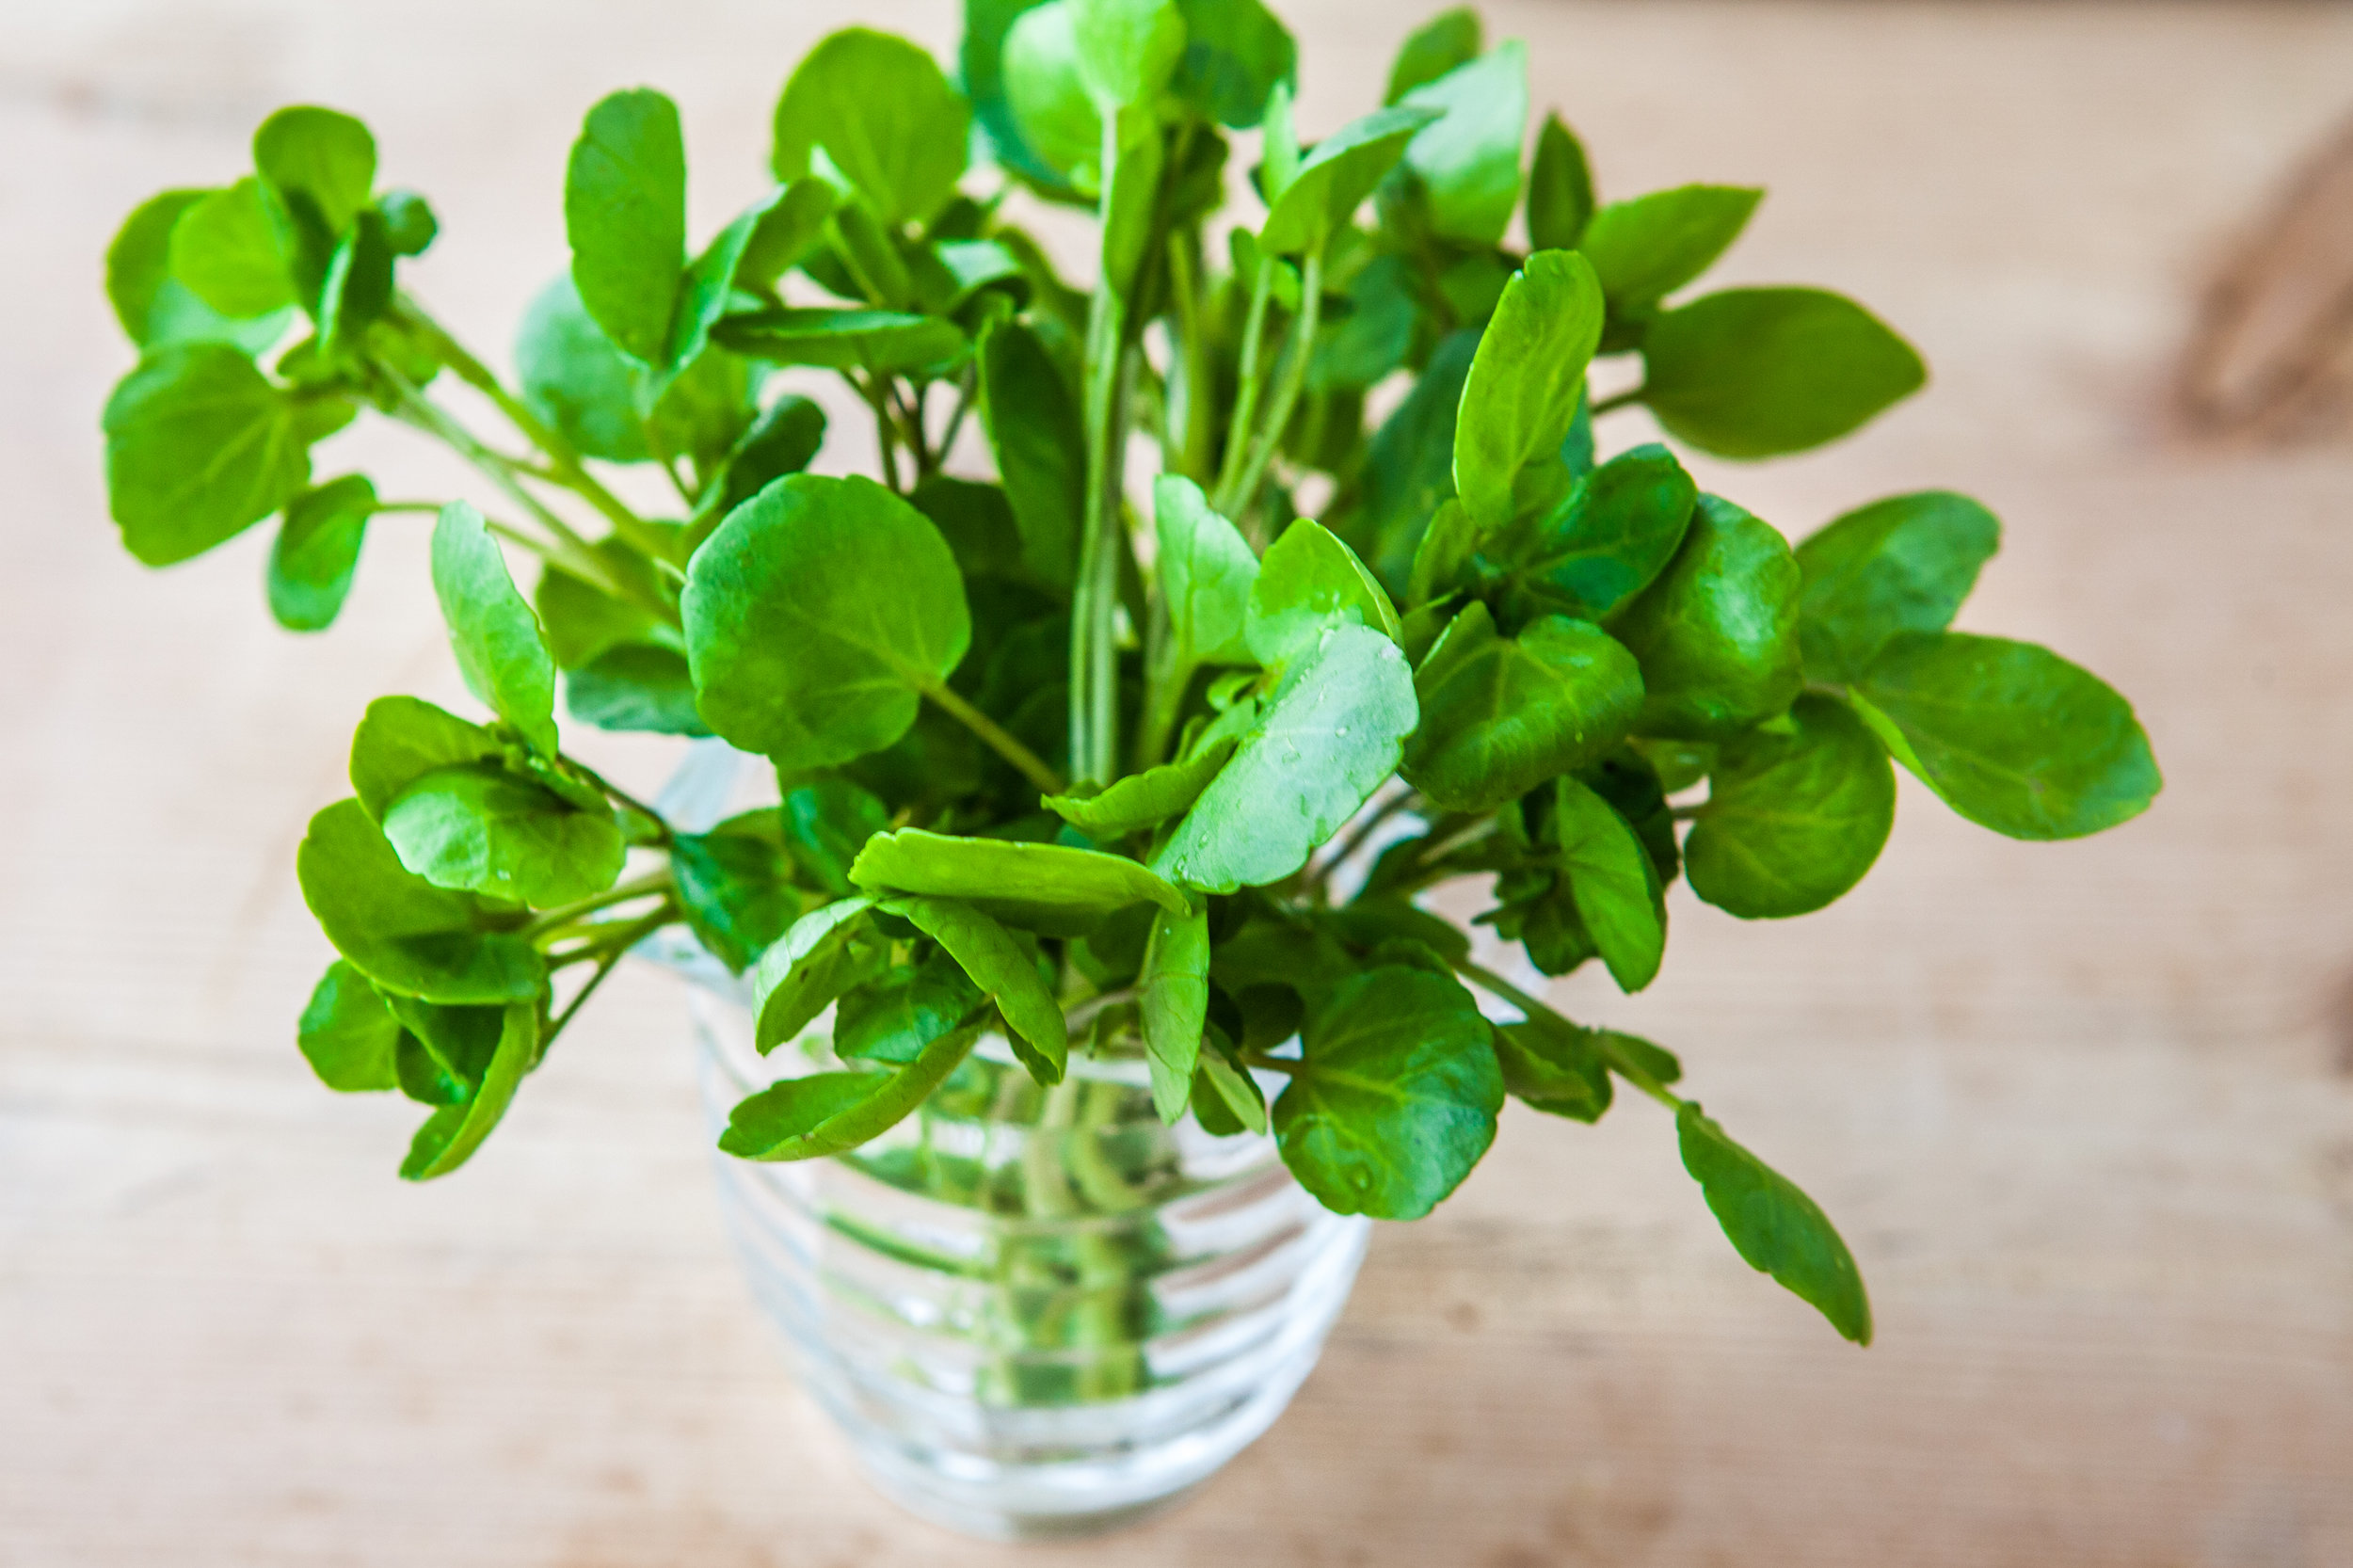 Watercress theoriginal superfood -